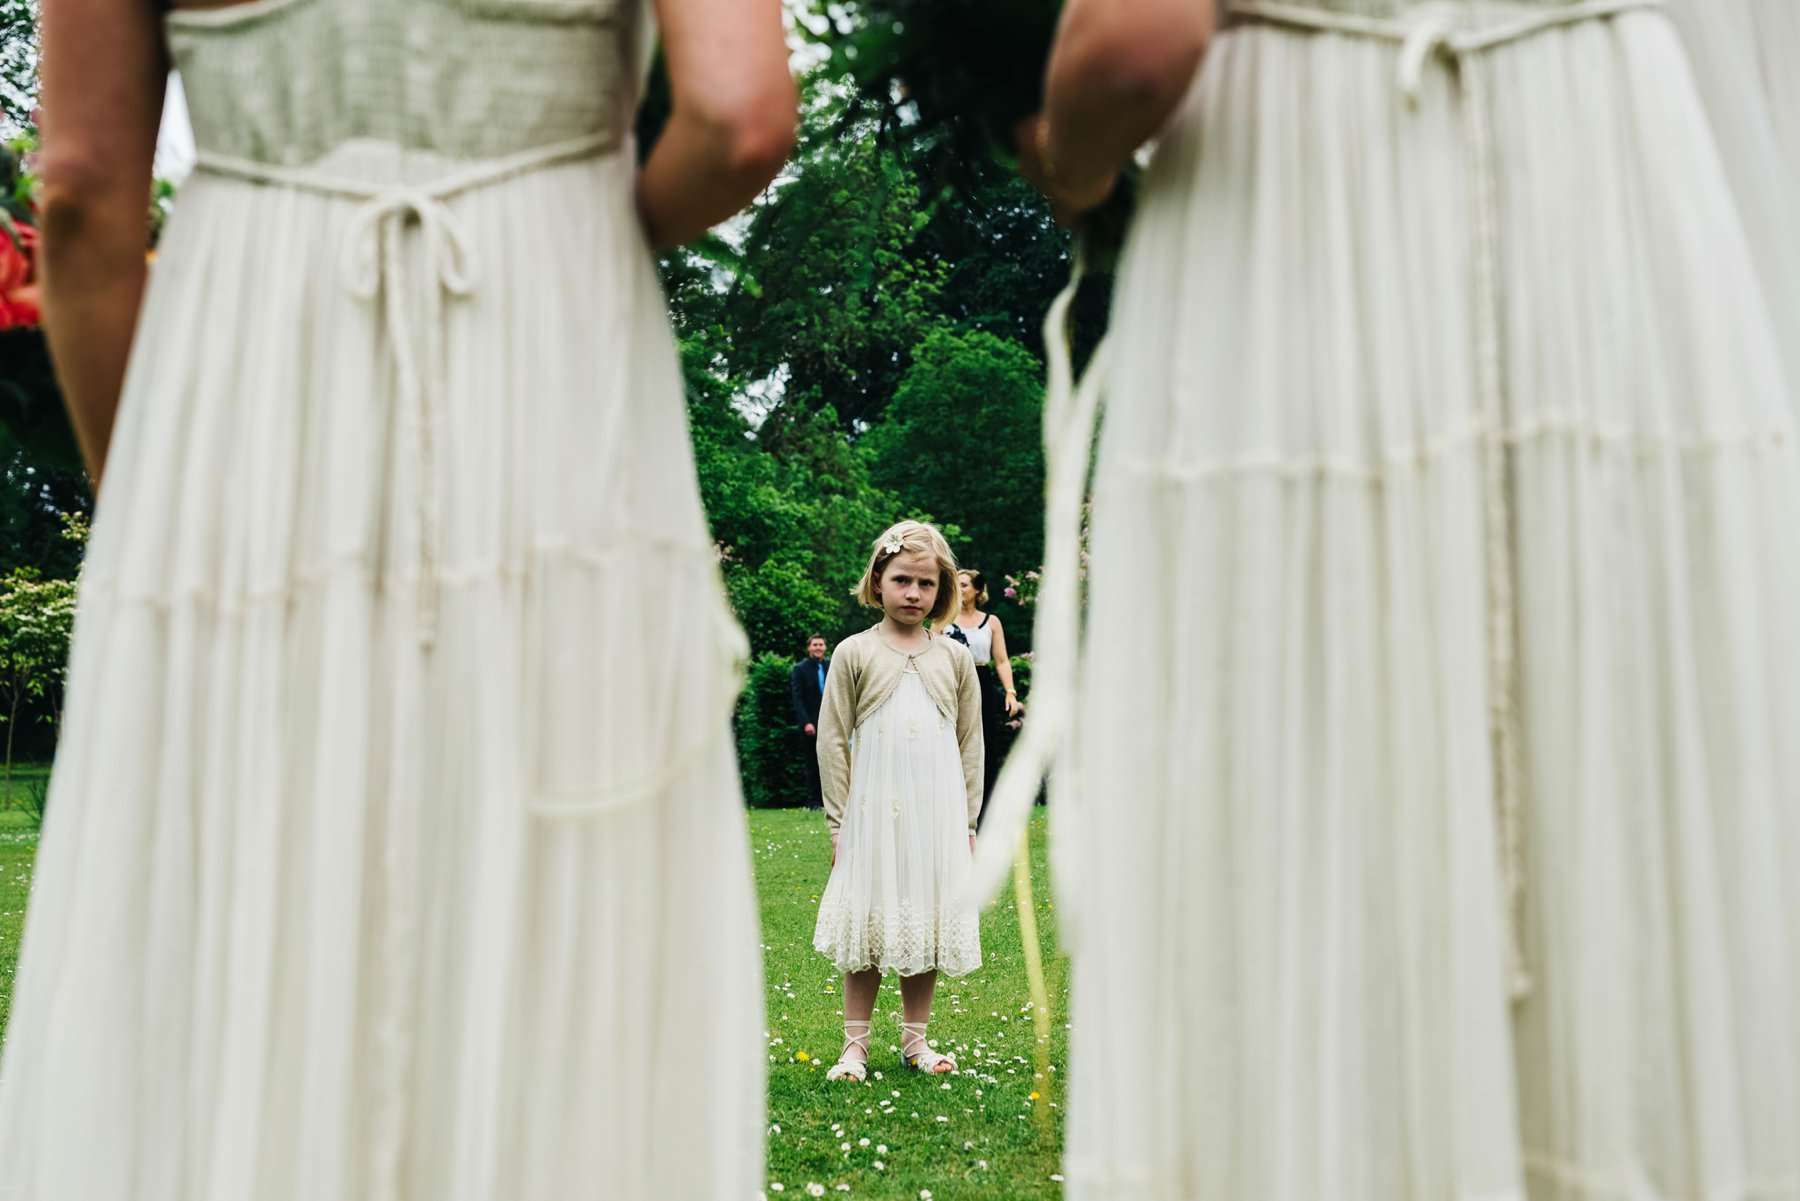 flower girl wedding photographer northern ireland